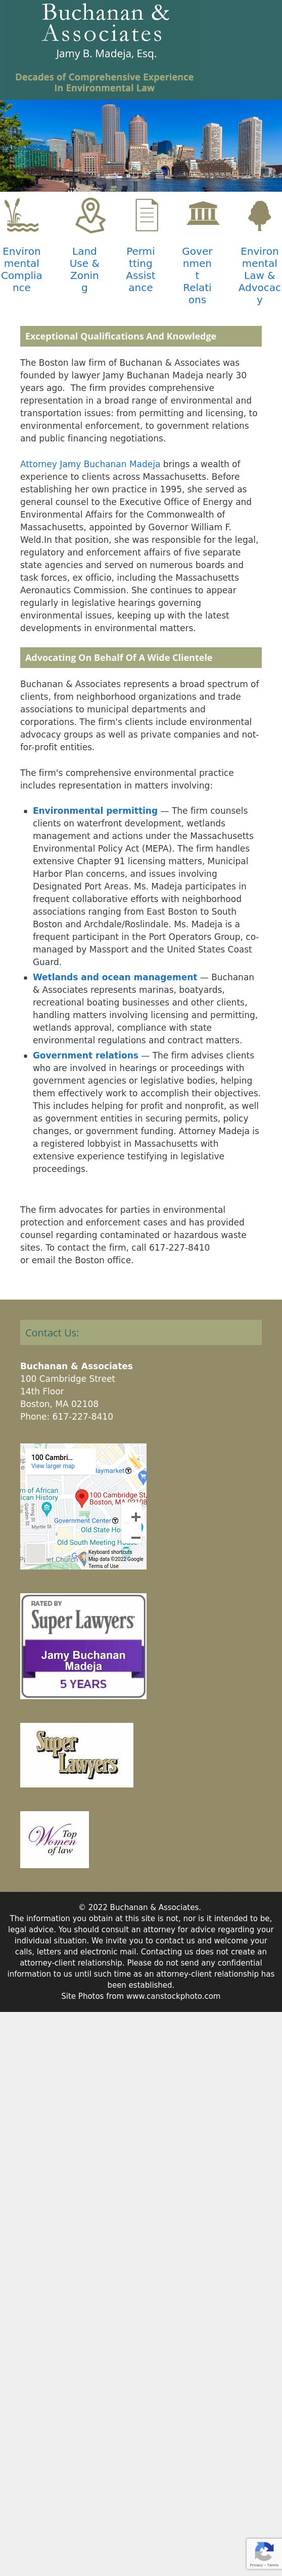 Buchanan & Associates - Boston MA Lawyers